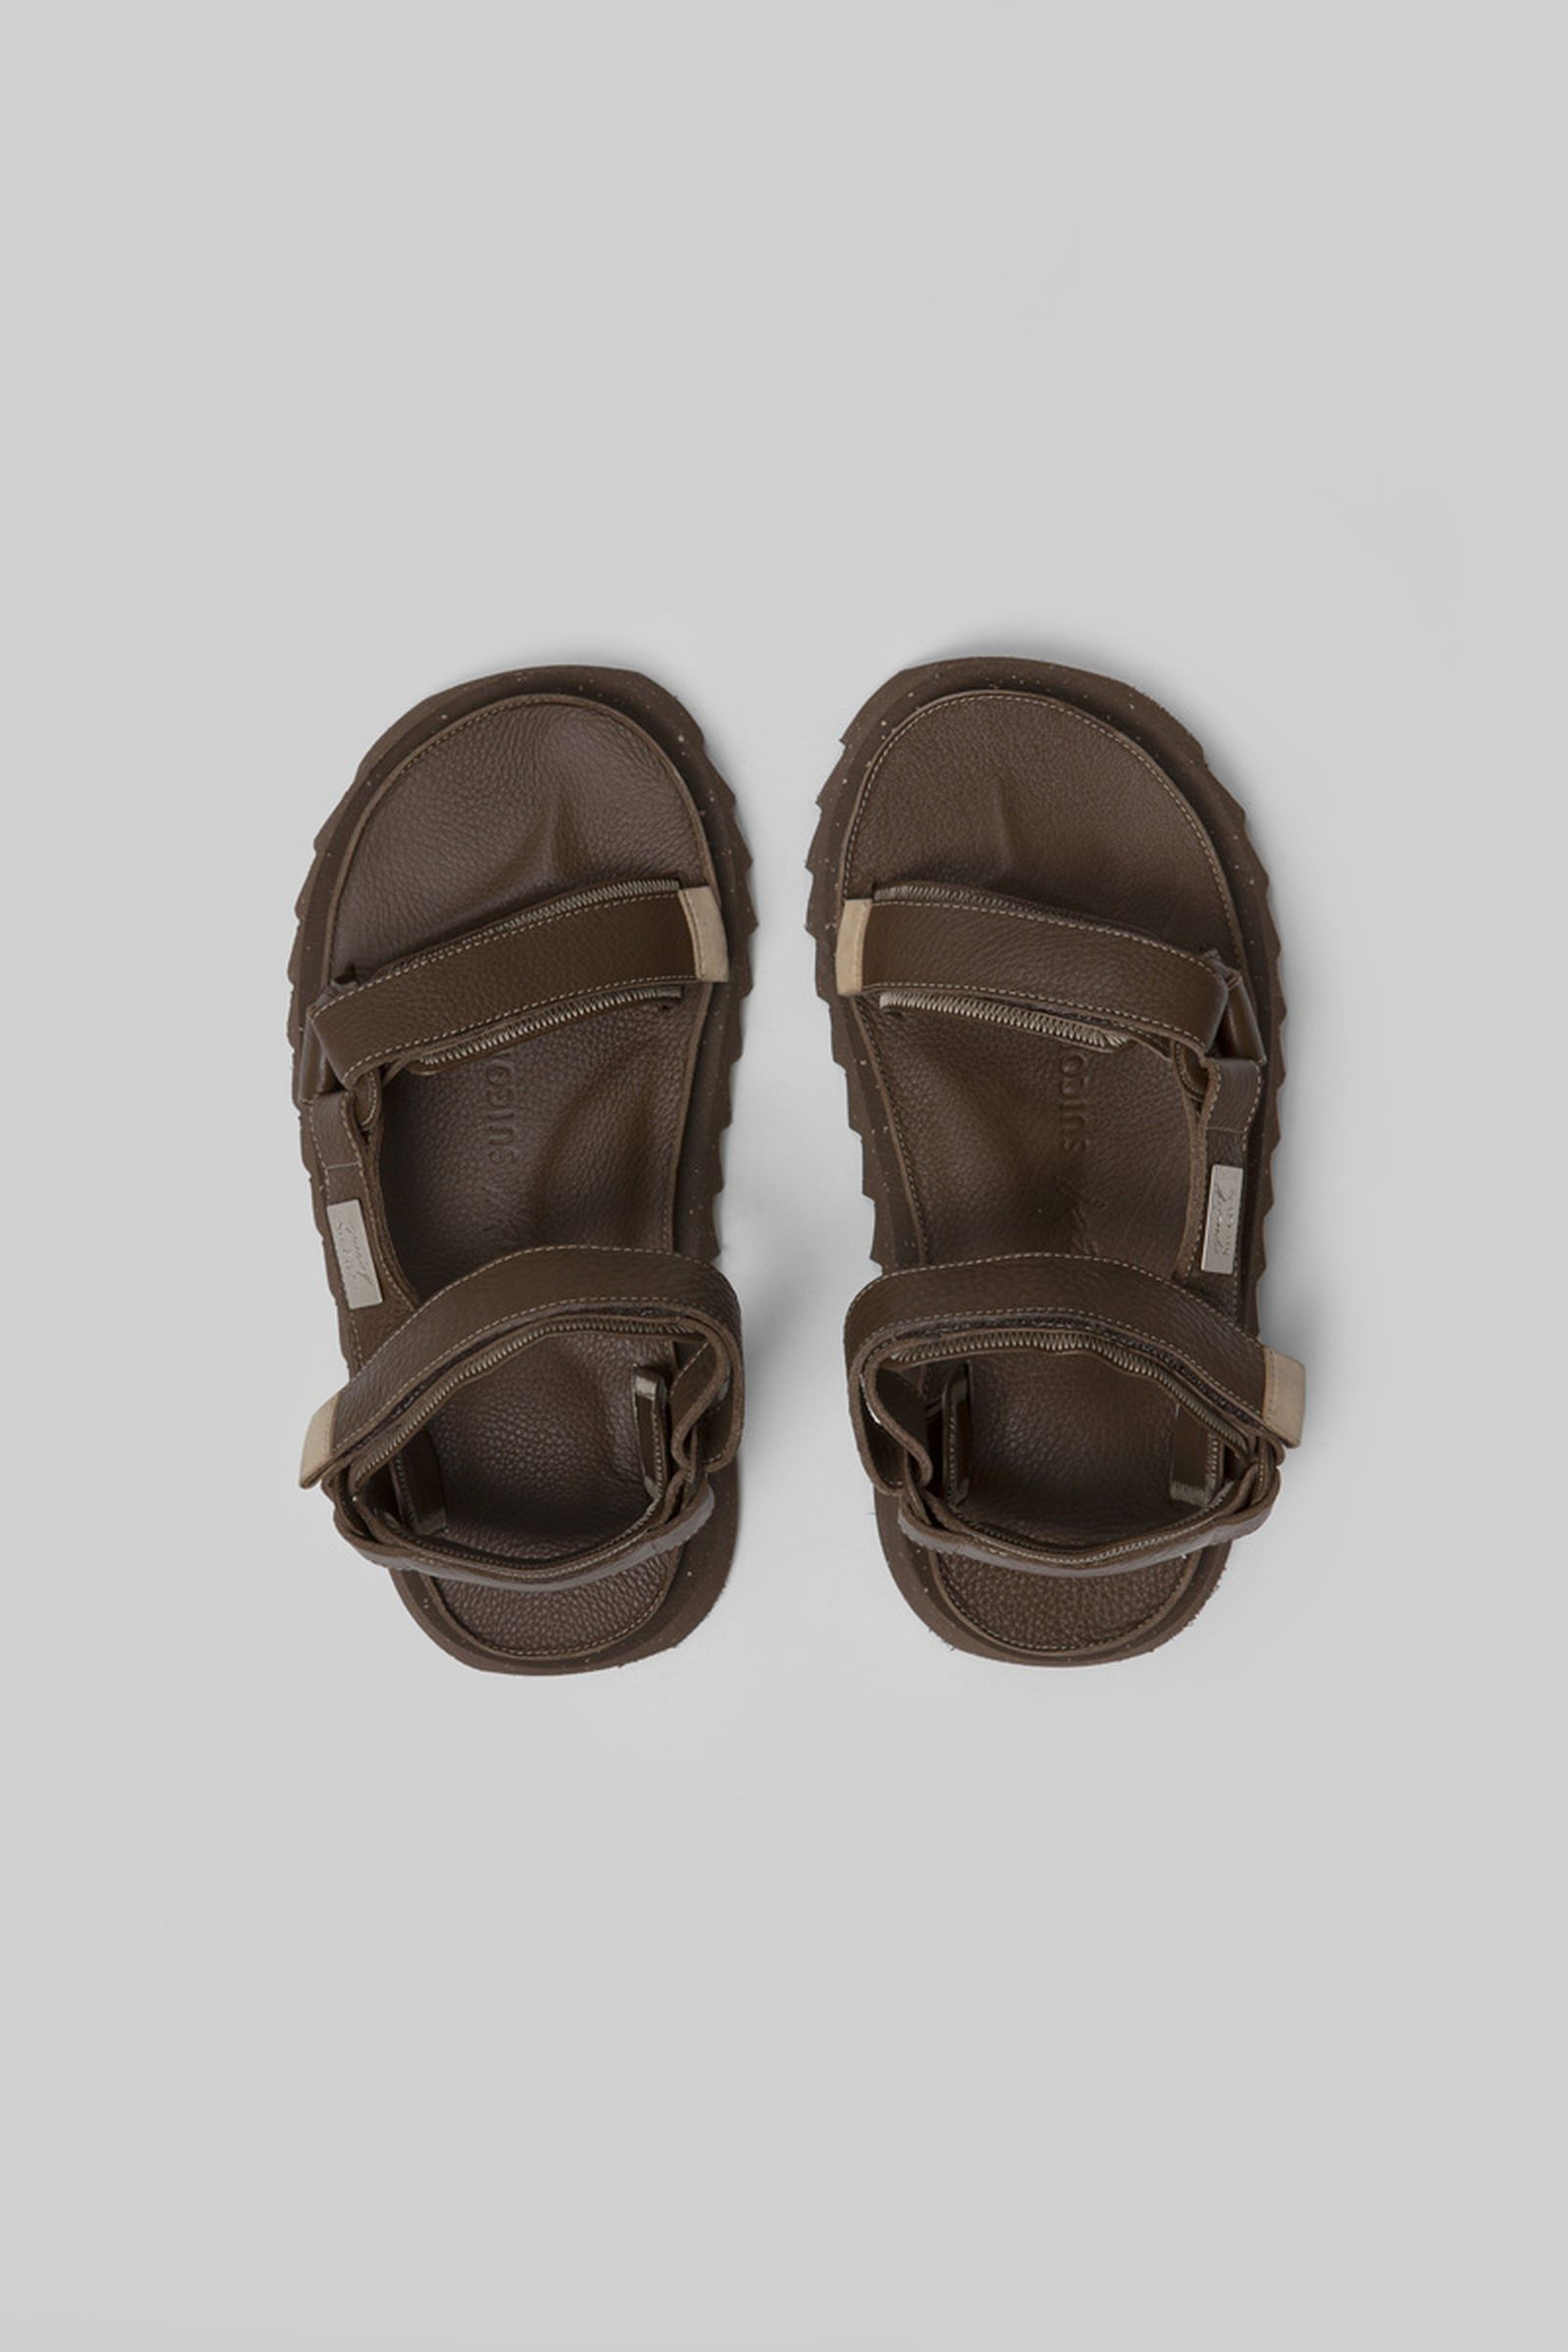 marsell-suicoke-ss21-collection-release-date-price-6